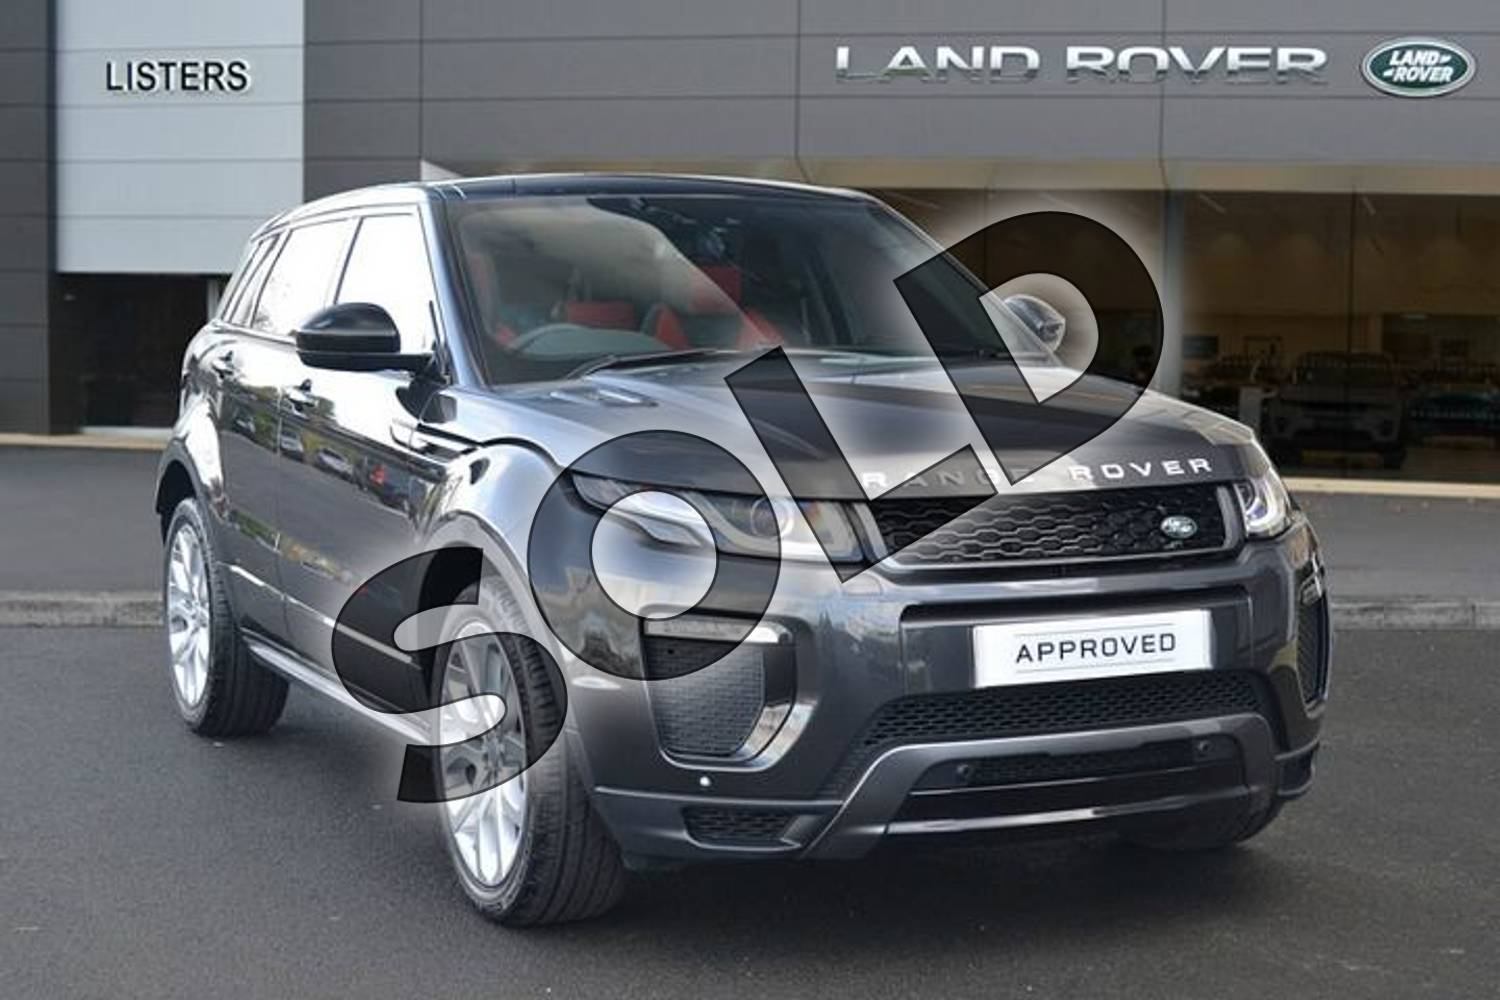 2019 Range Rover Evoque Diesel Hatchback Diesel 2.0 TD4 HSE Dynamic 5dr Auto in Carpathian Grey at Listers Land Rover Hereford